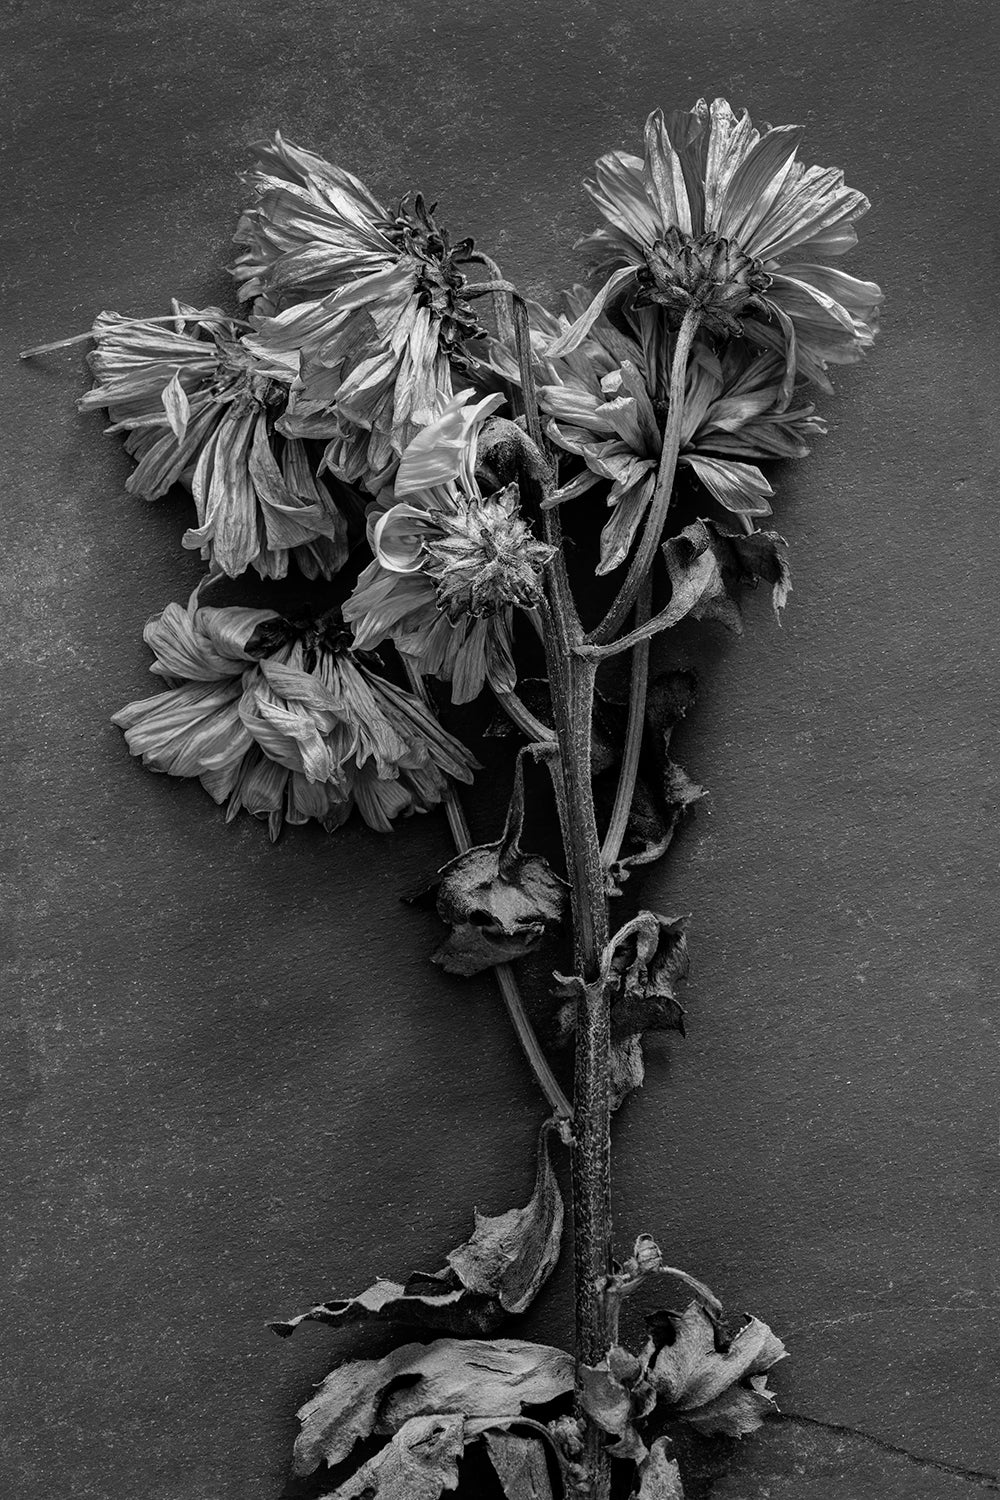 Bouquet of Yellow Flowers: Black and White Photograph by Keith Dotson. Buy a fine art print here.